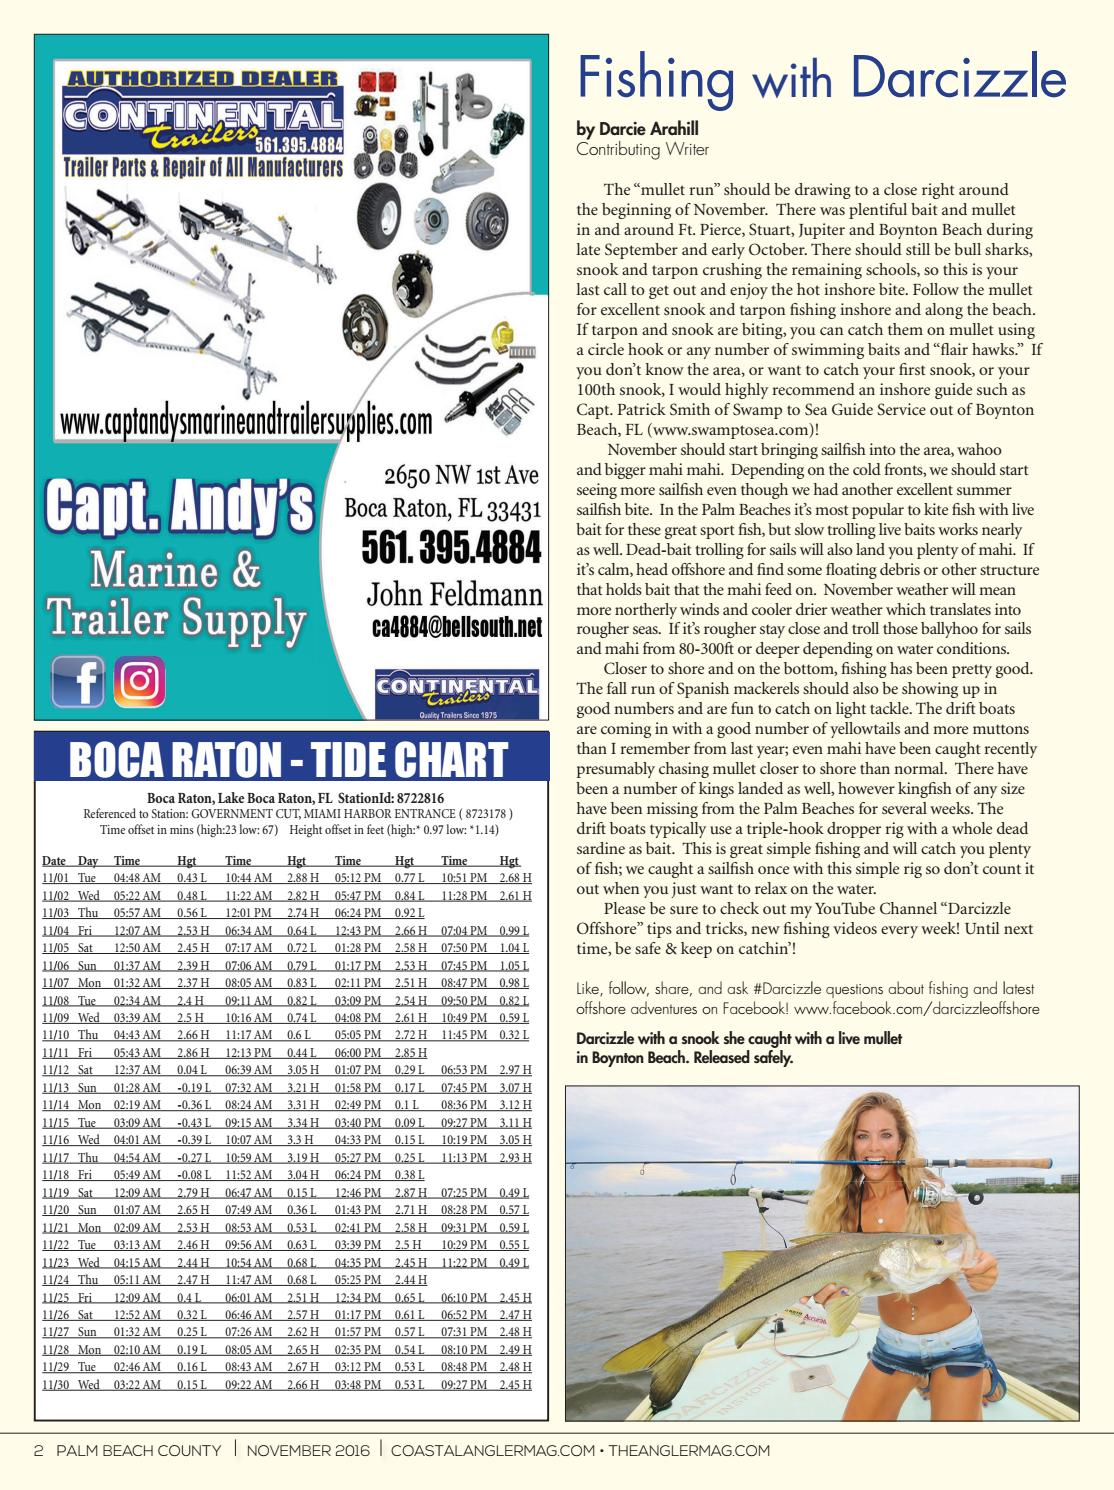 Coastal Angler Magazine Nov Palm Beach County By Coastal Angler